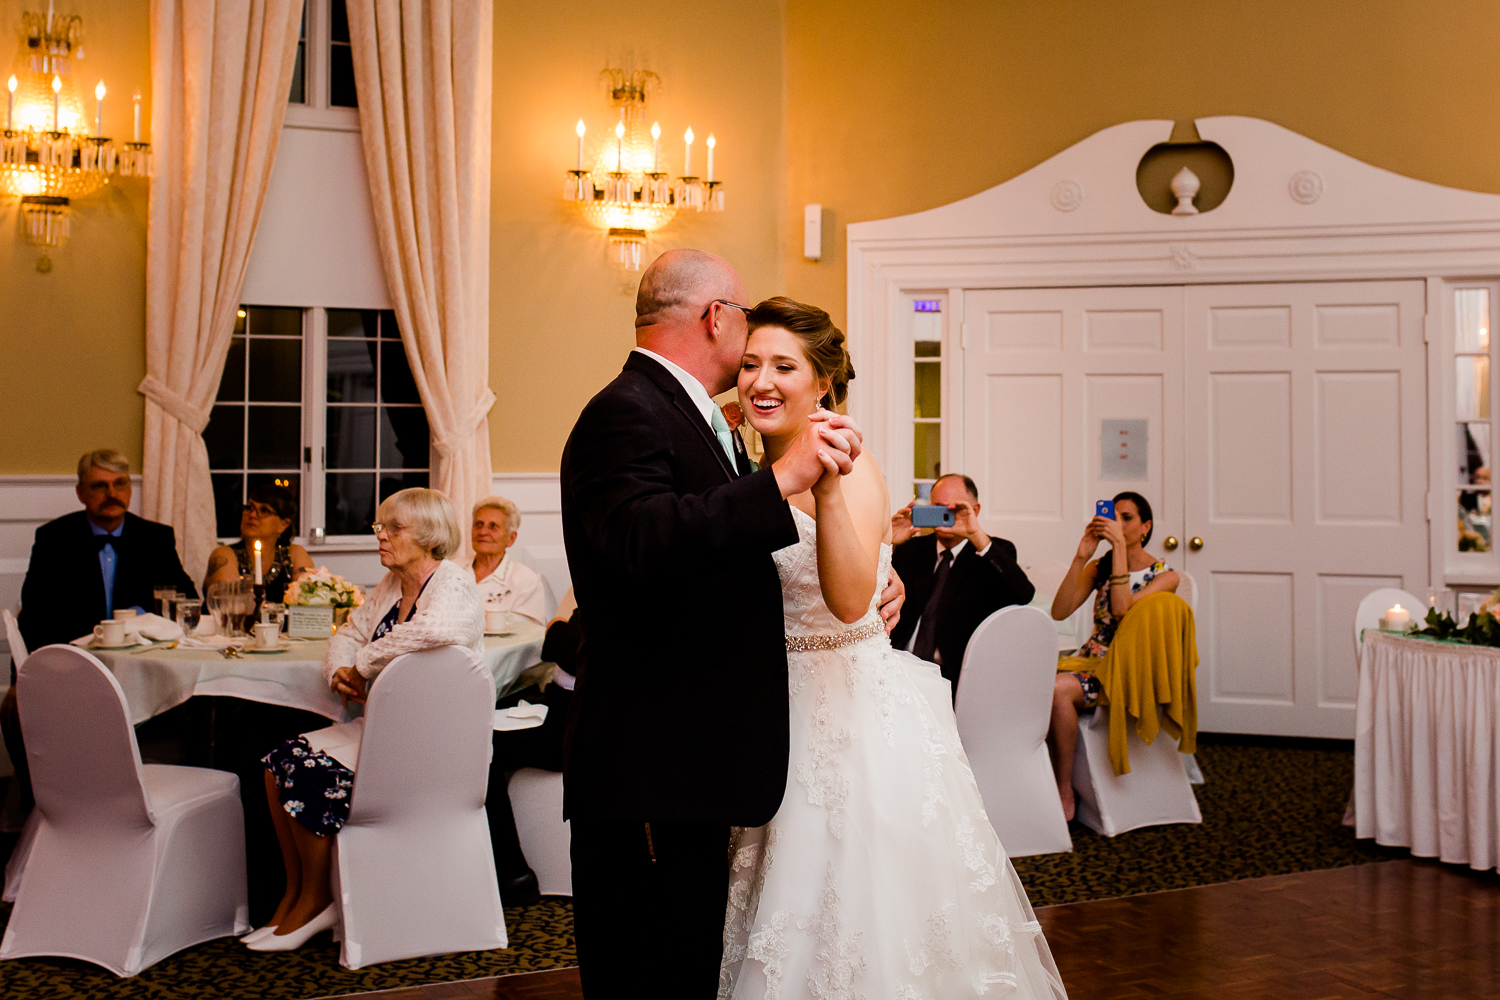 The bride and her father share a sweet moment during the father daughter dance at her wedding. The father kisses the side of her head while the bride smiles.